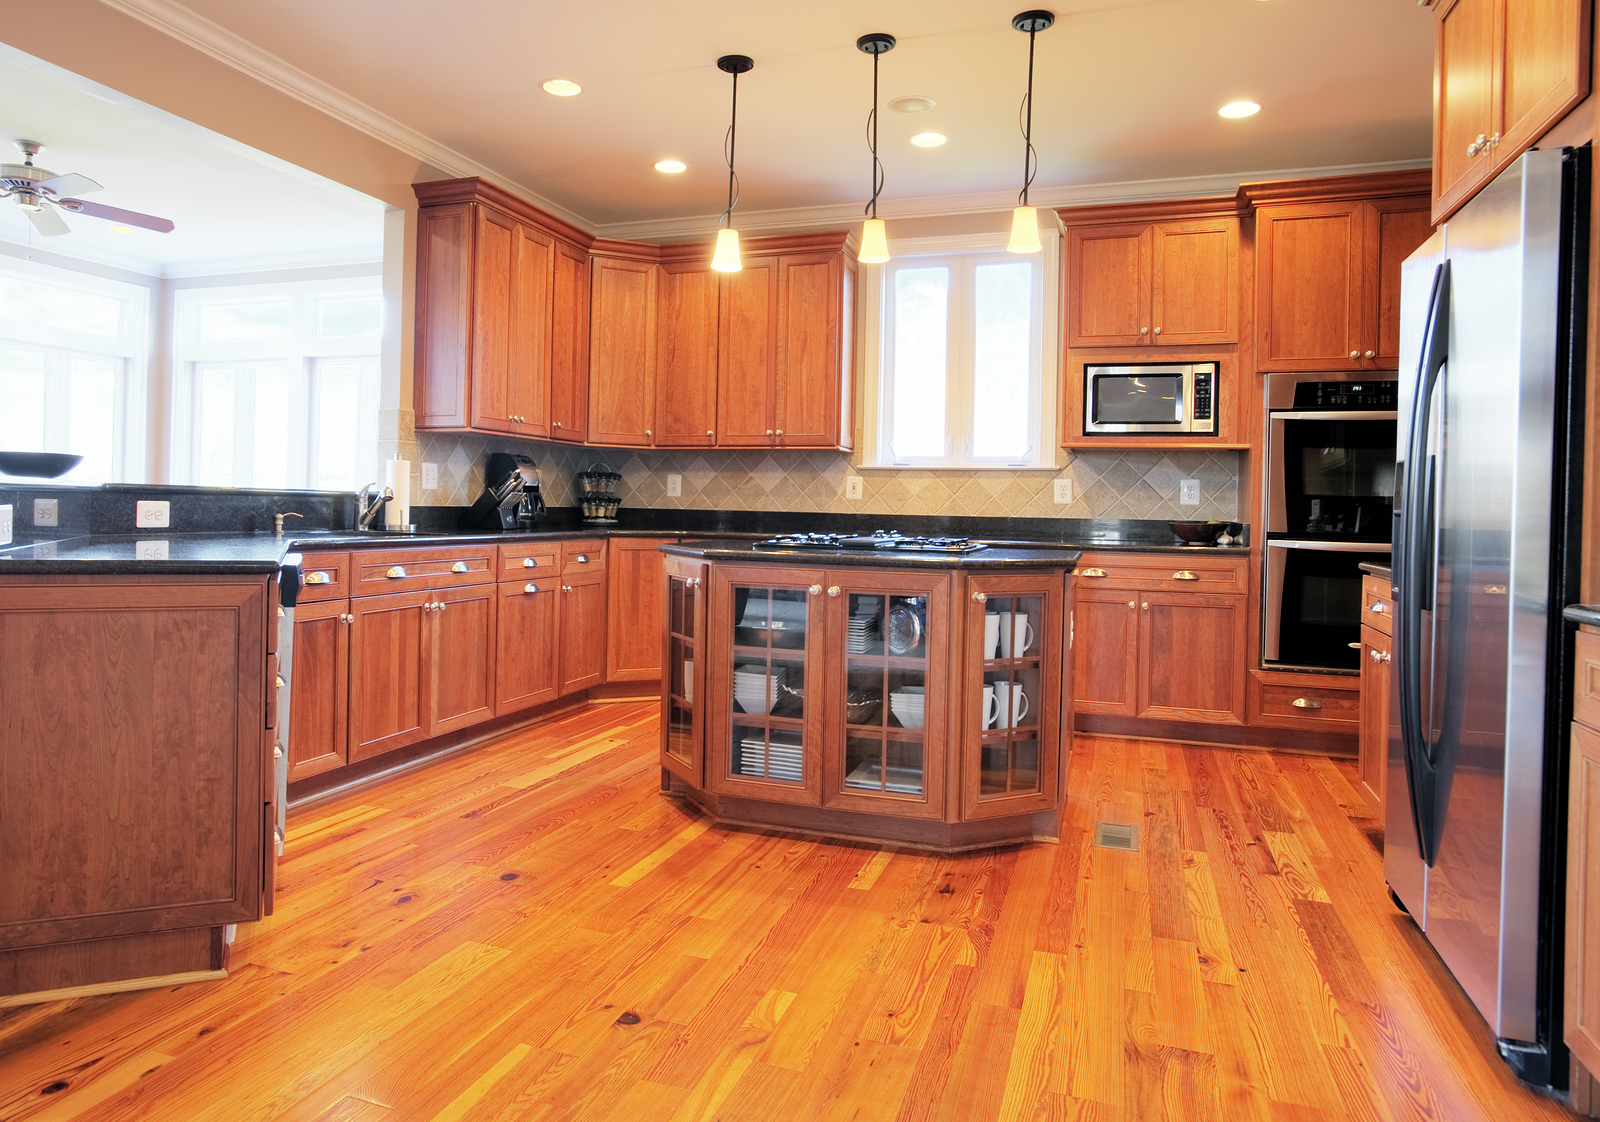 Why Choose UB Hardwoods?